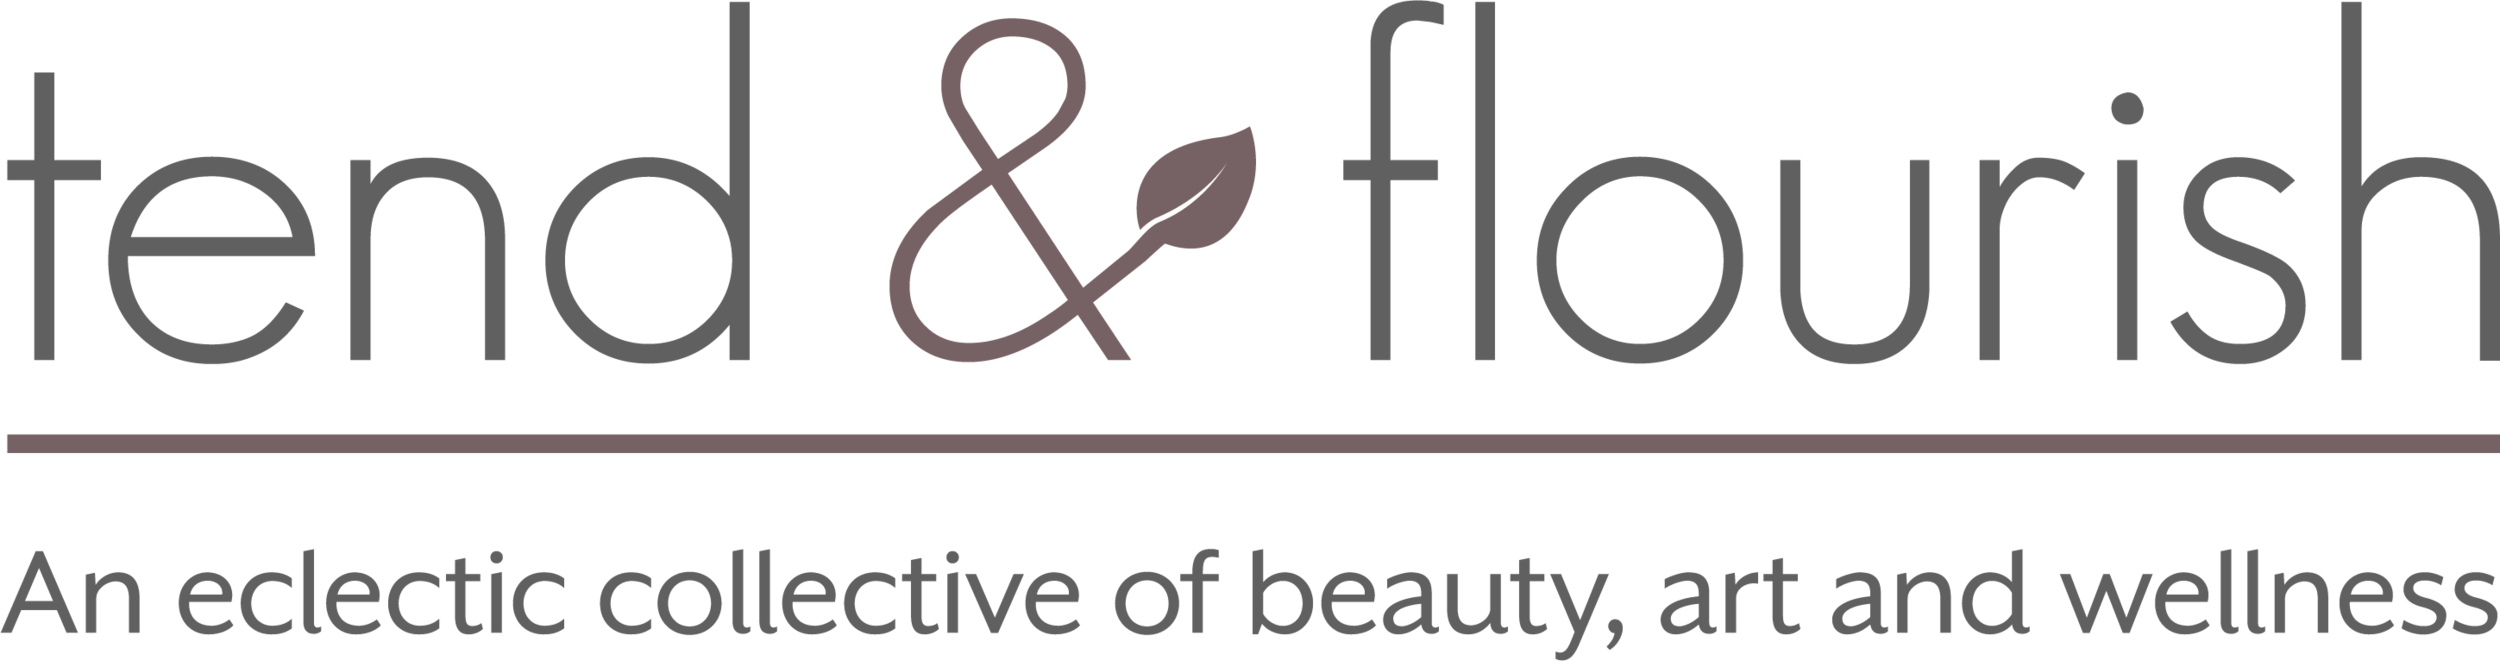 Tend_Flourish_Final_logo_tagline.png